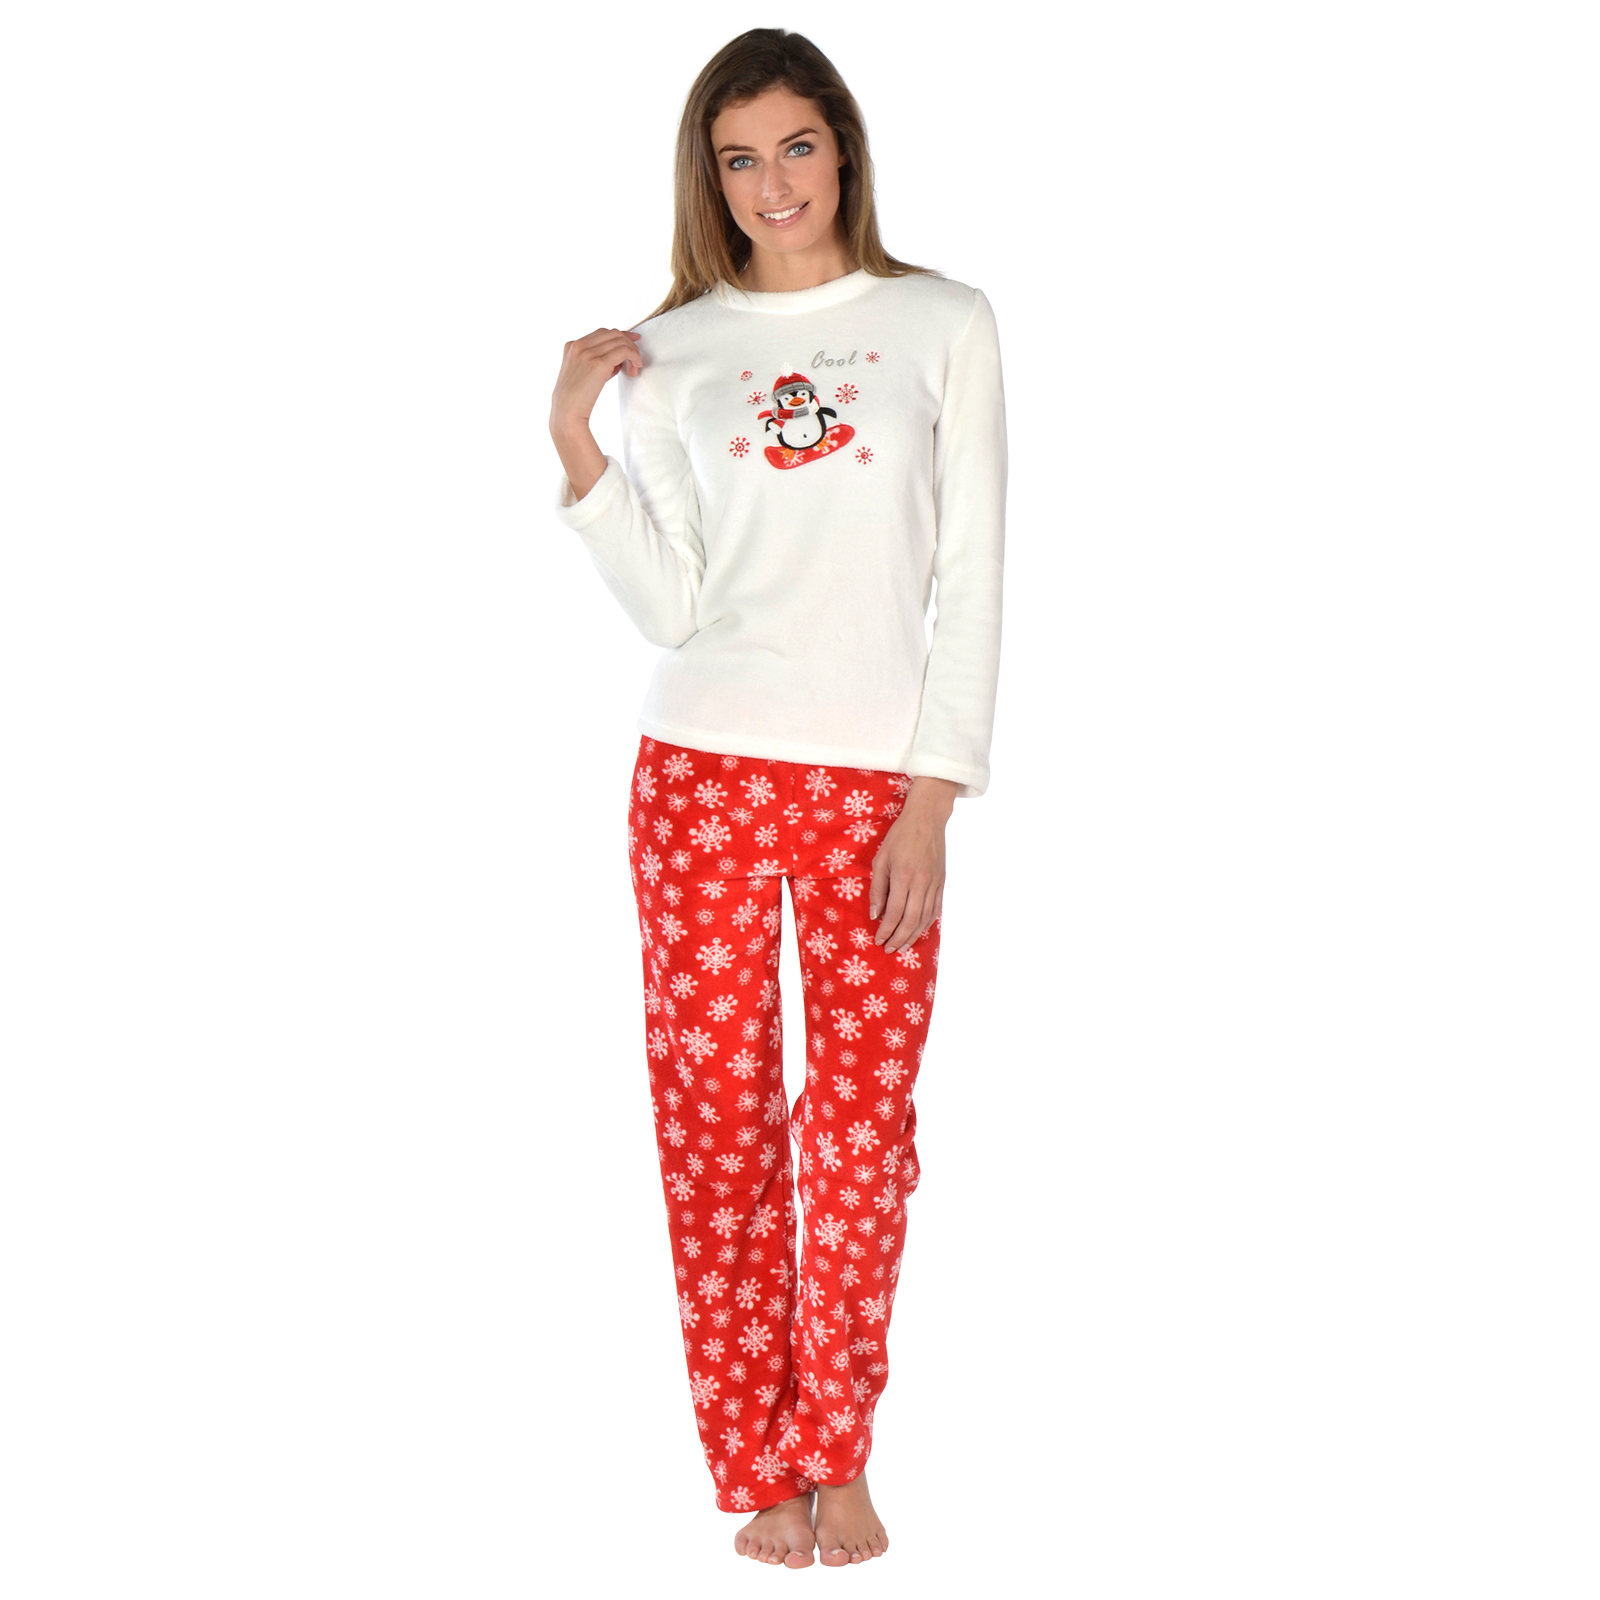 Ladies Pyjama Tops. Our gorgeous edit of women's pyjama tops in gotta-have-it novelty prints and classic styles make bedtime fashionable. Drift off to the land of nod feeling cosy and cool.